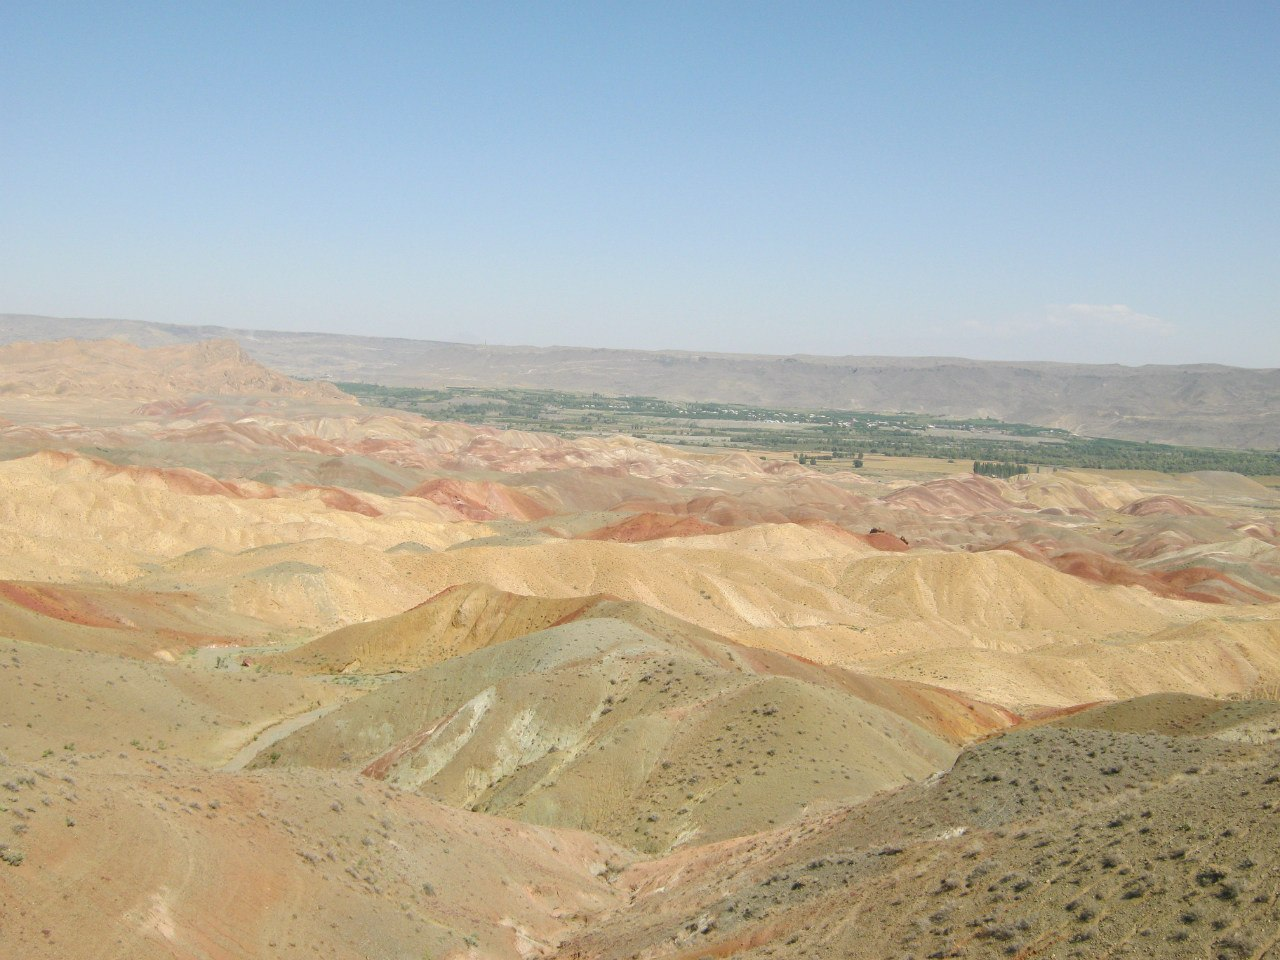 multy-colored landscape as Mars